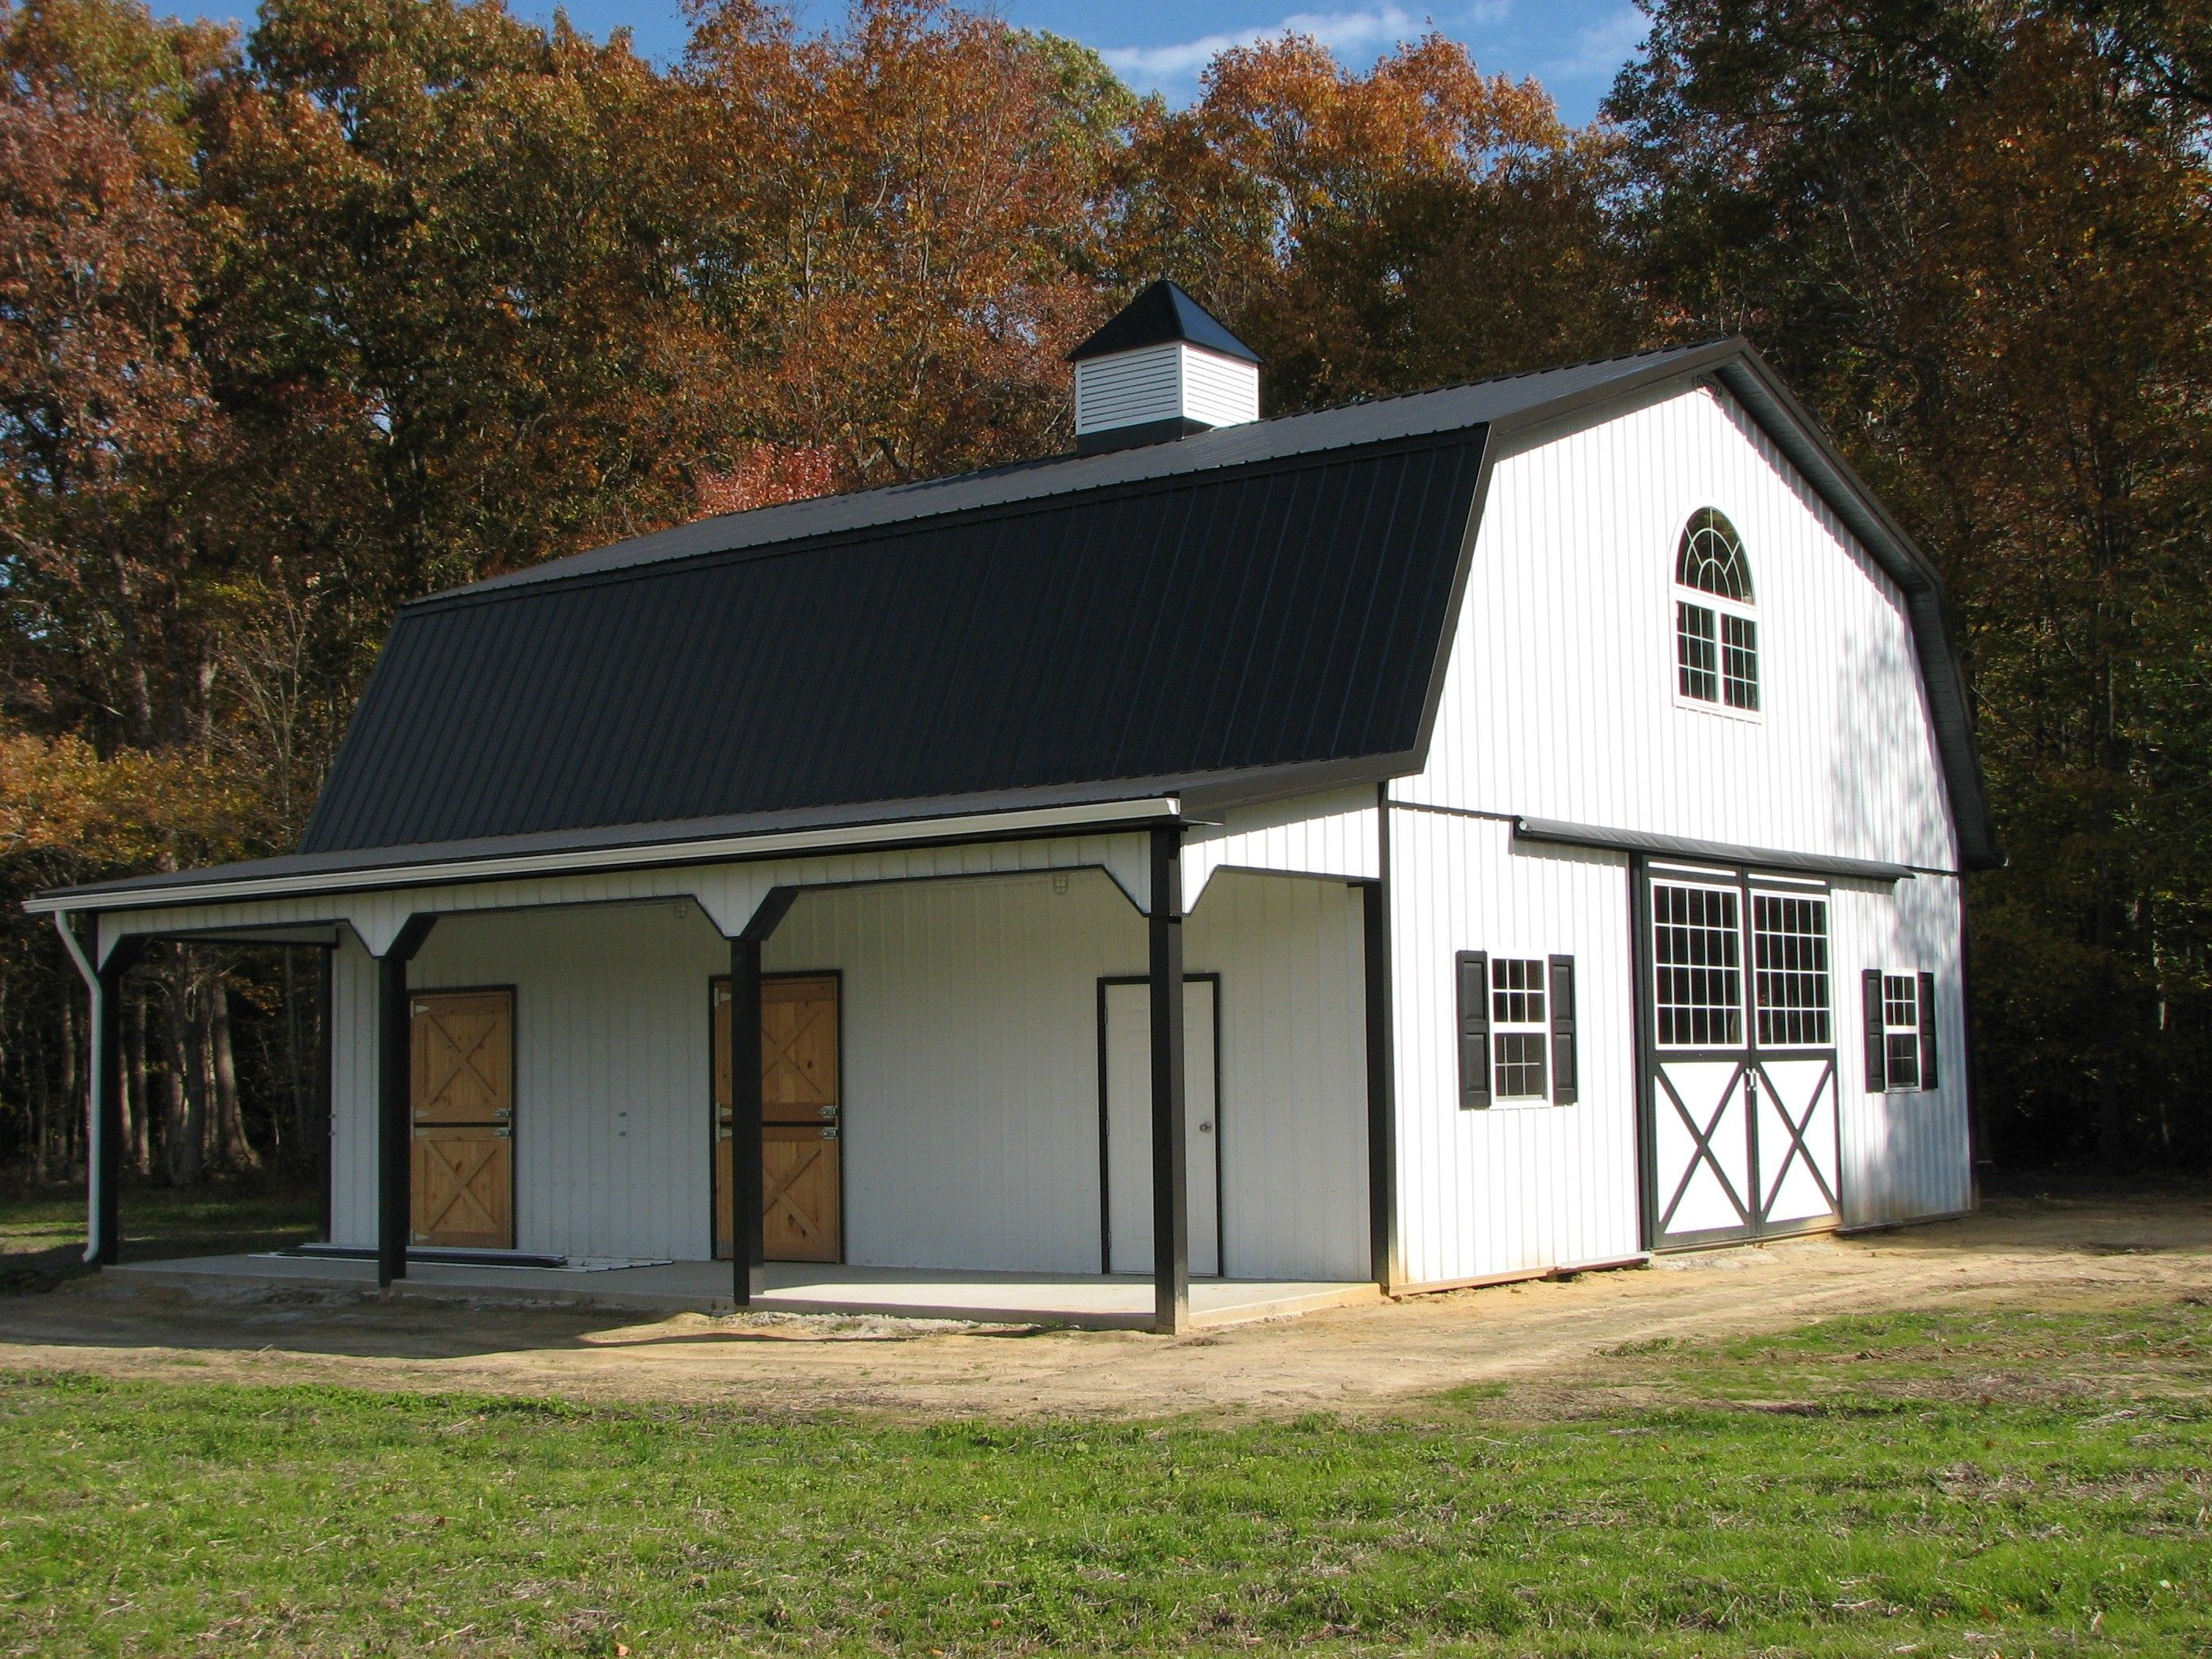 Flexible and adaptable pole barn house plans for you for Metal pole barn homes plans